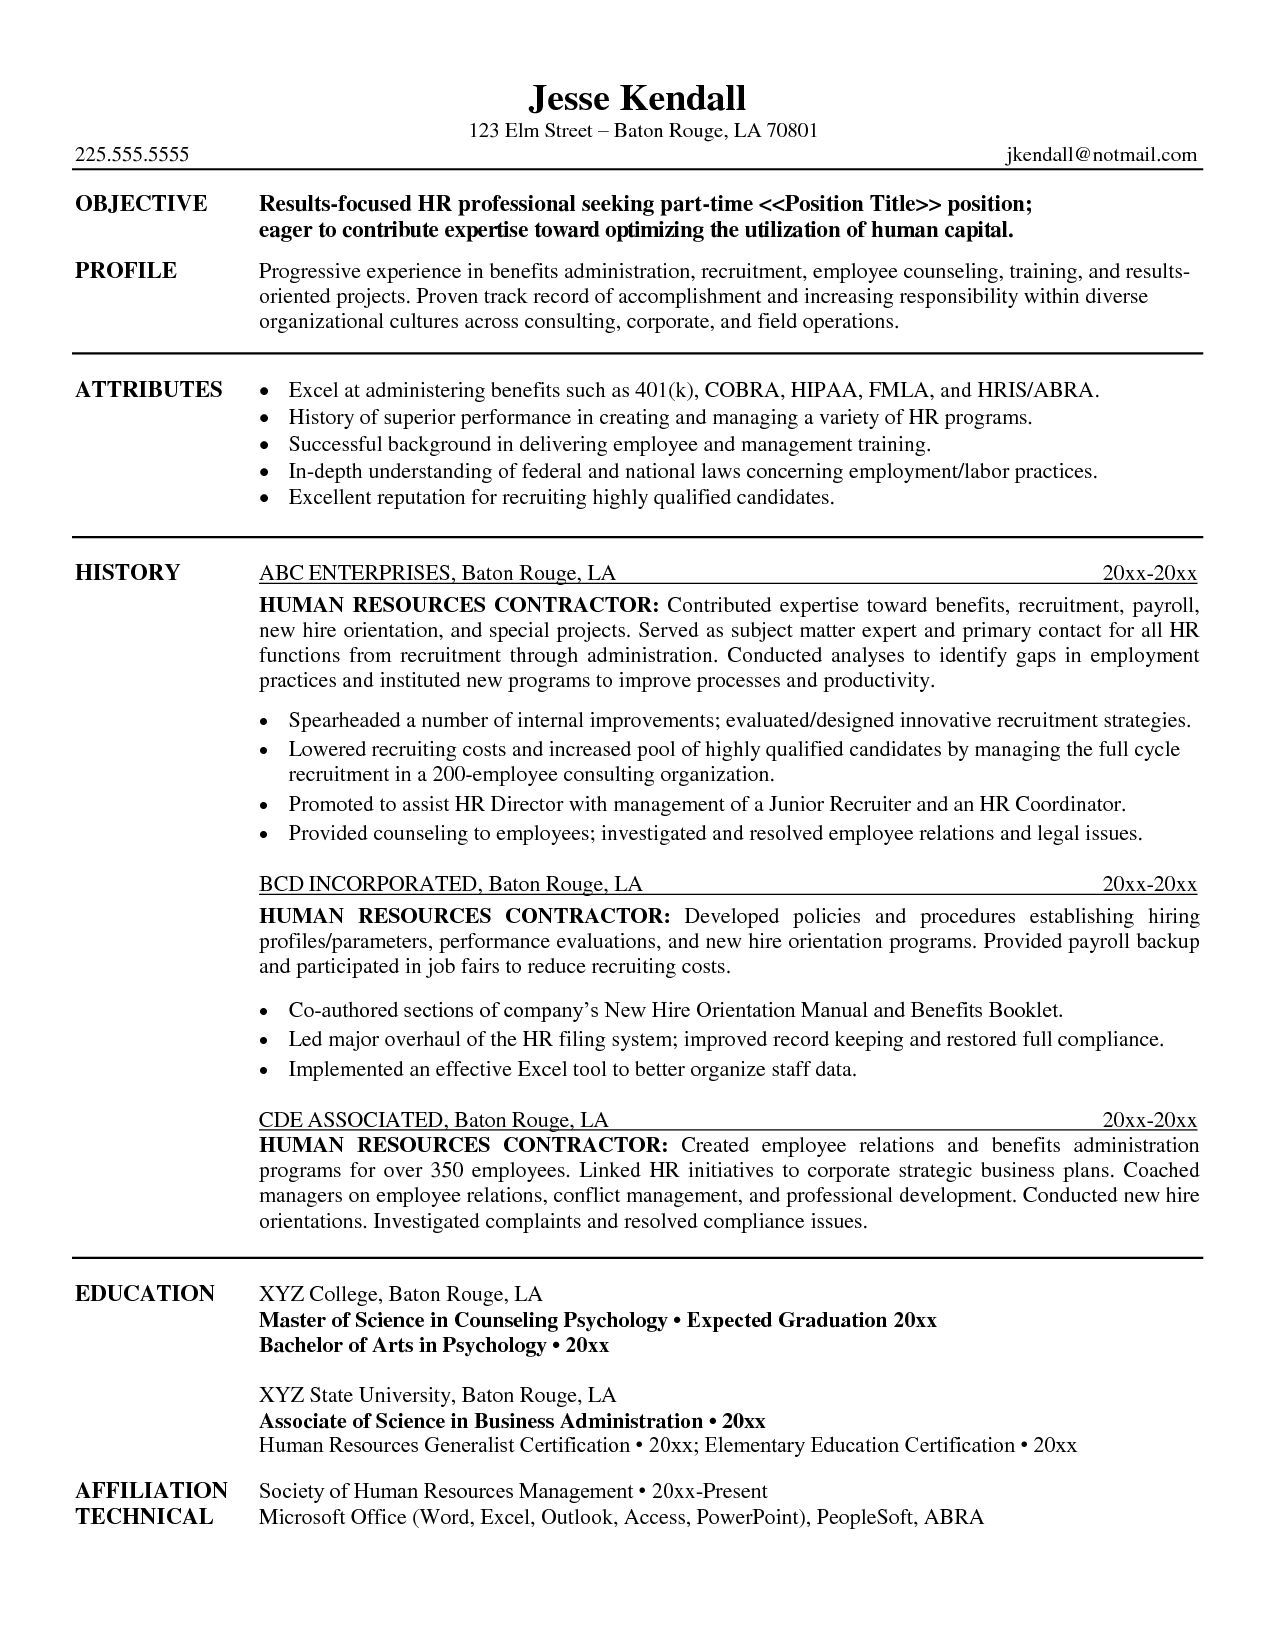 Independent Contractor Resume Contractor Resume Independent Construction Sample Builder  Home